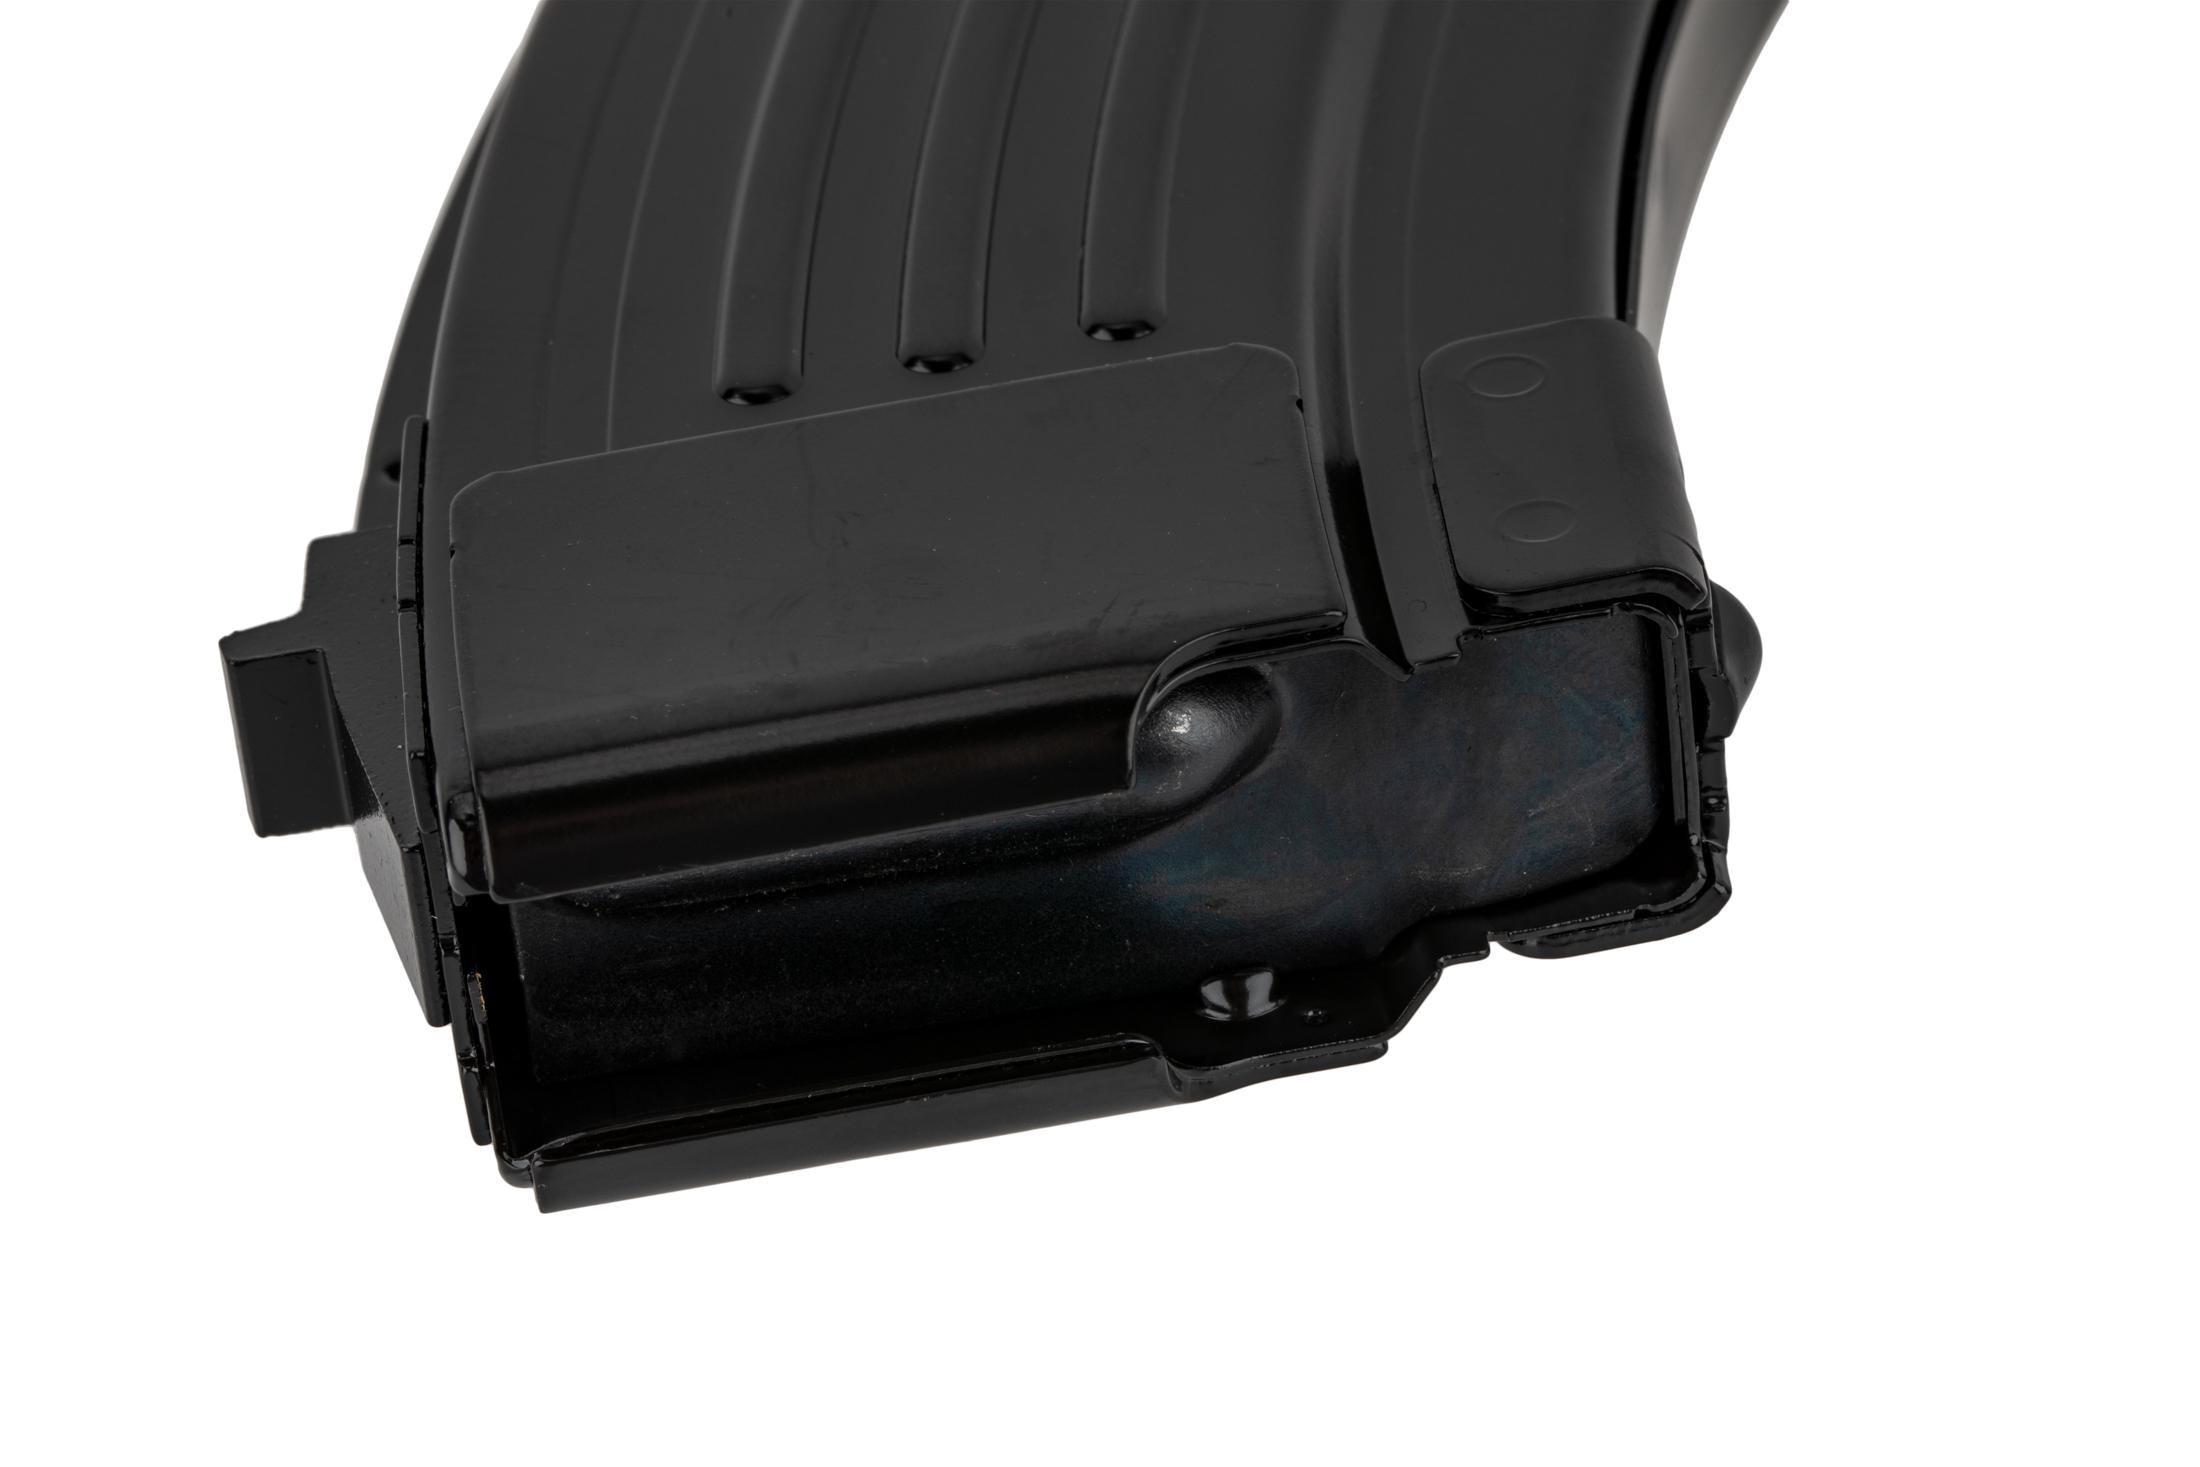 The KCI ak47 magazine 30 round features last round bolt hold open functionality